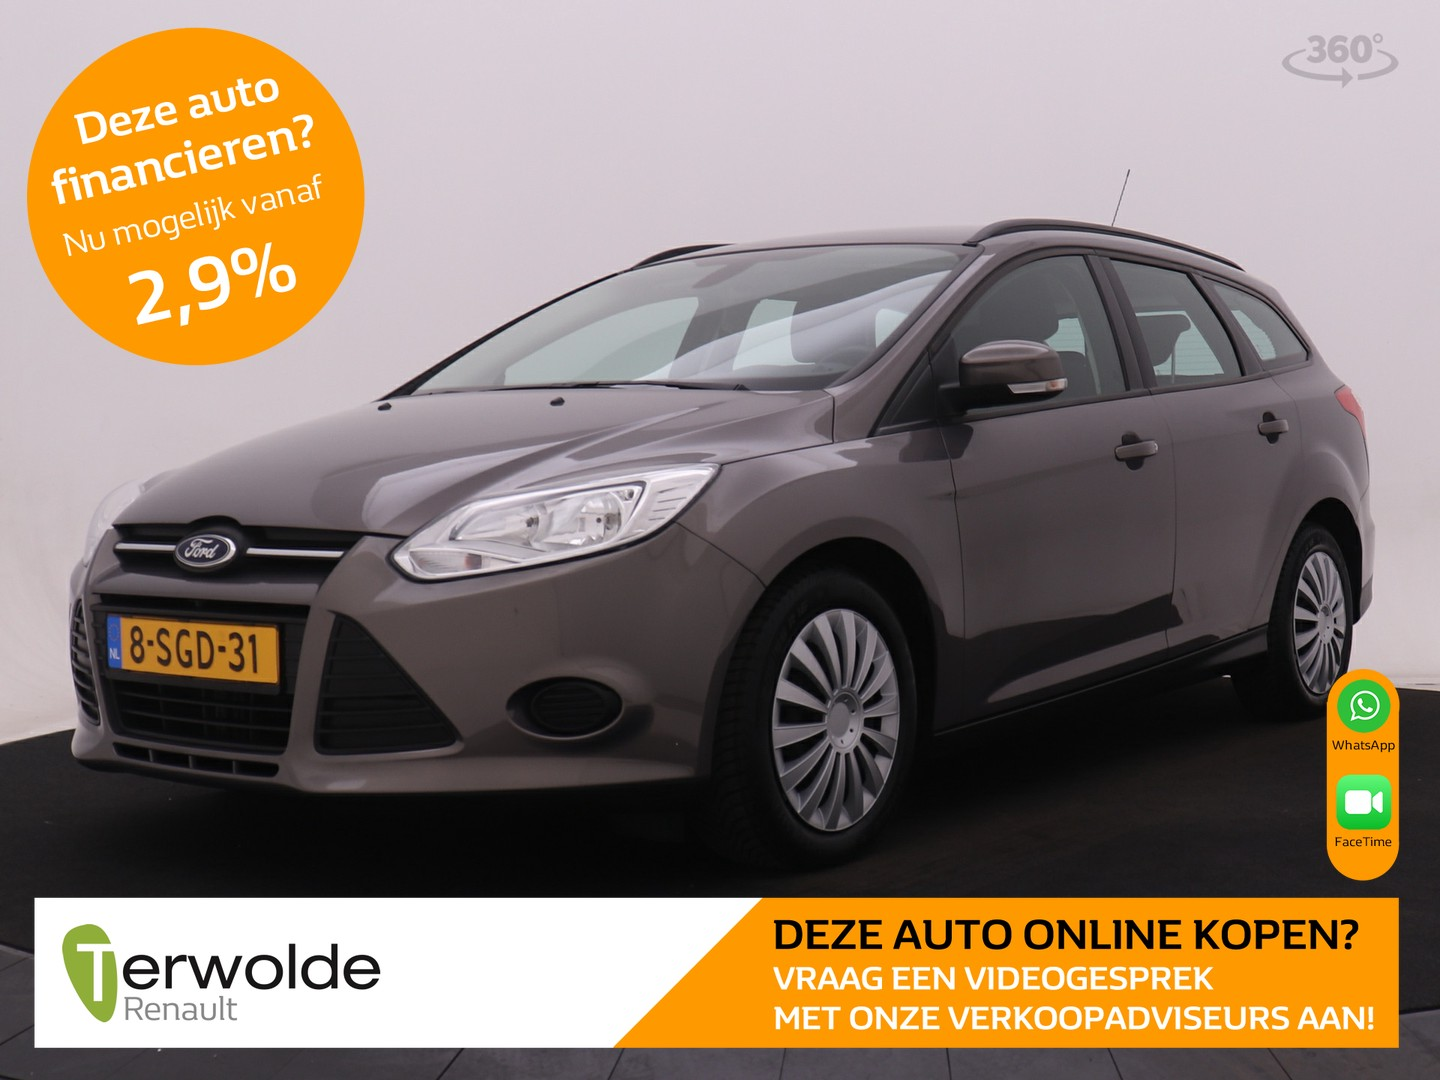 Ford Focus Wagon 1.6 tdci 105 pk econetic lease trend